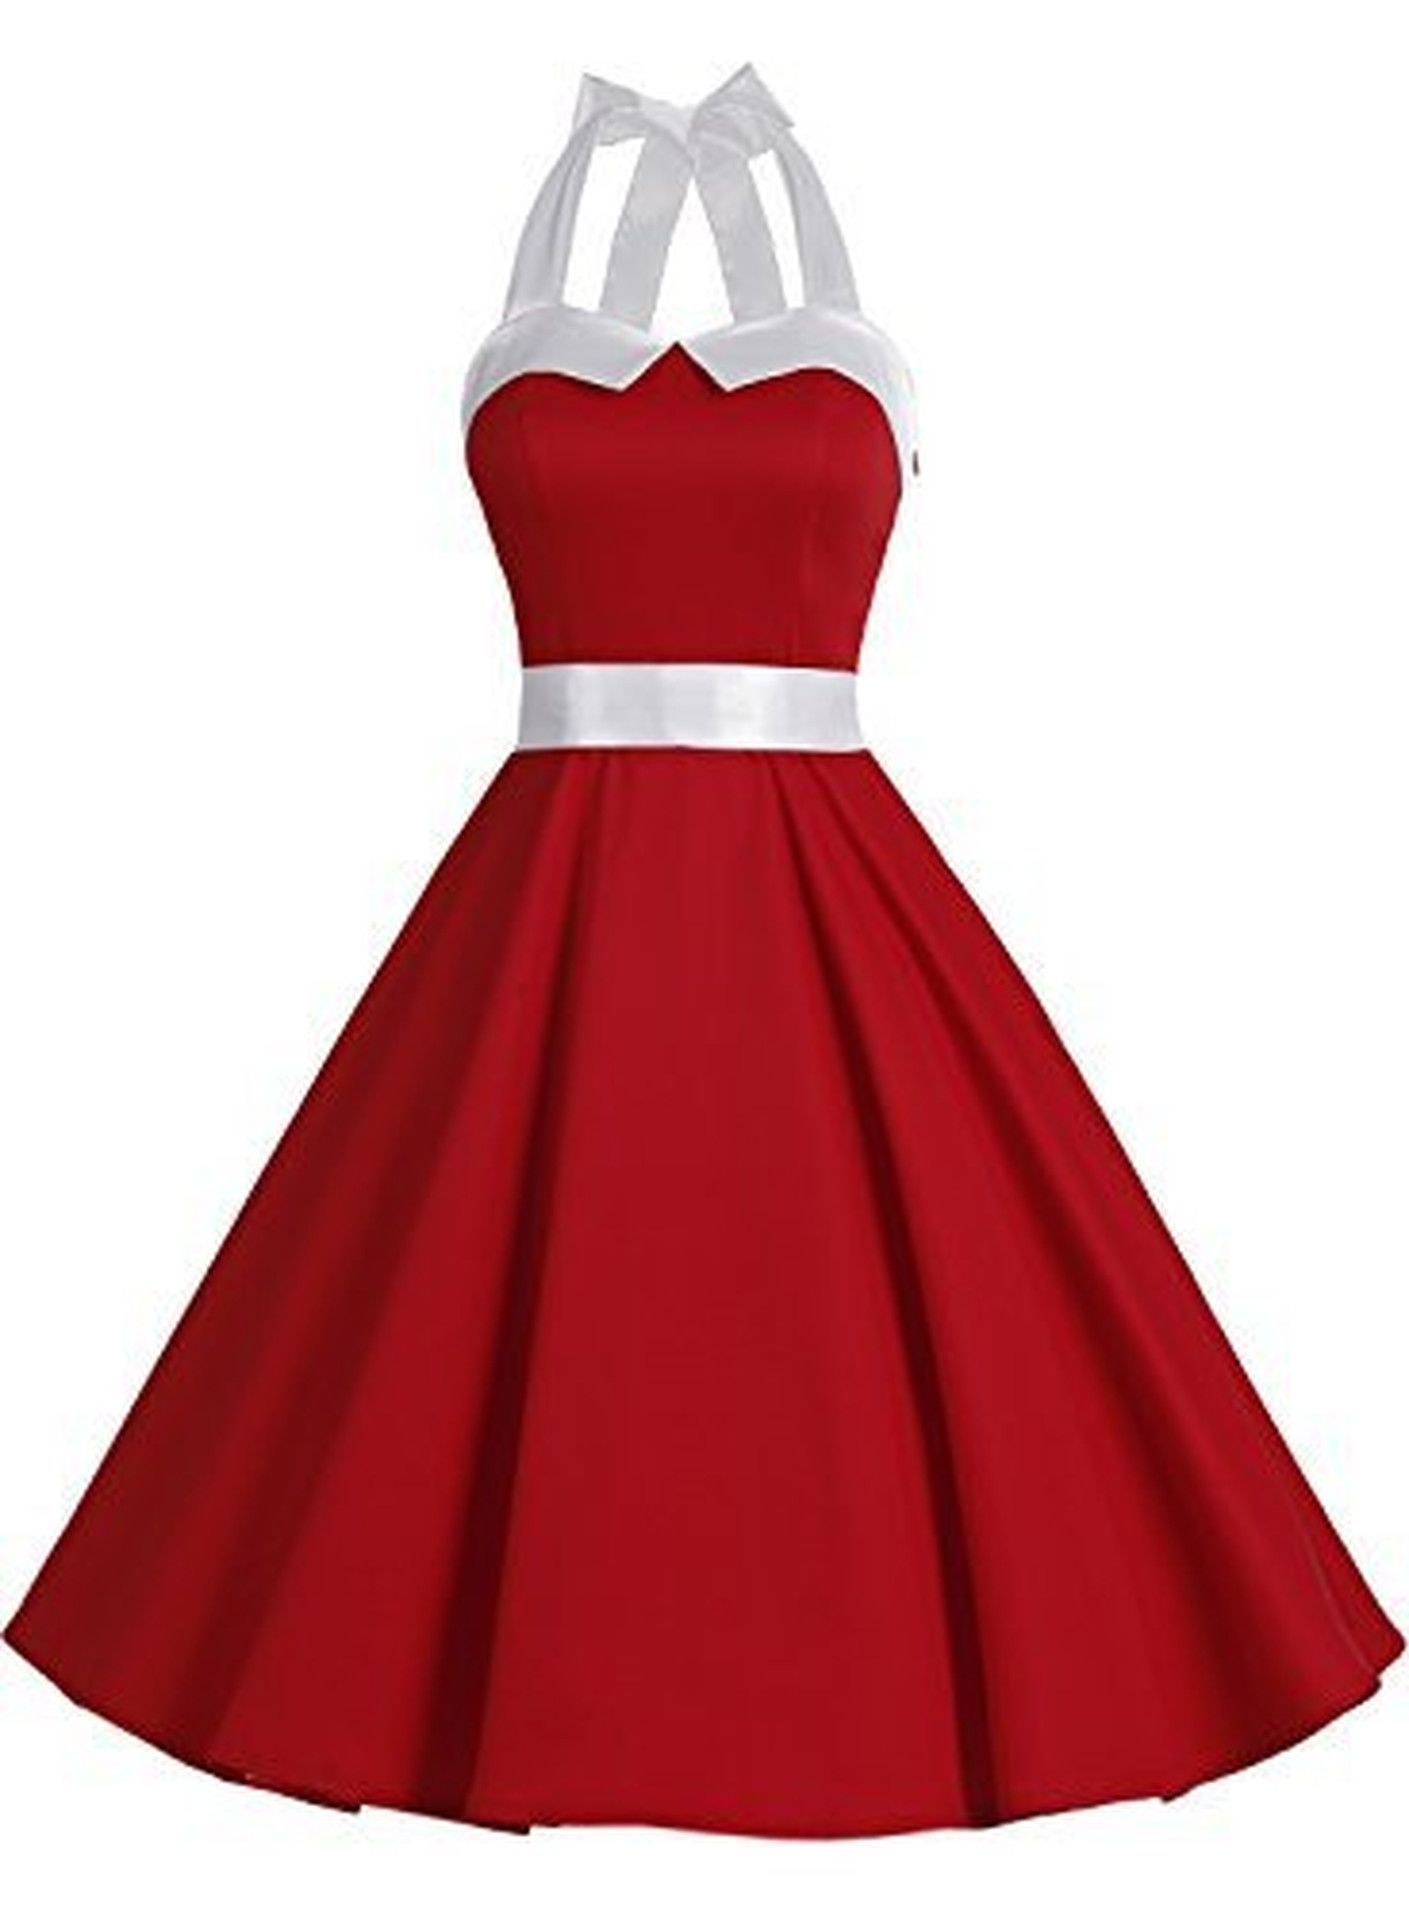 Vintage polka dot retro cocktail prom dresses us us with